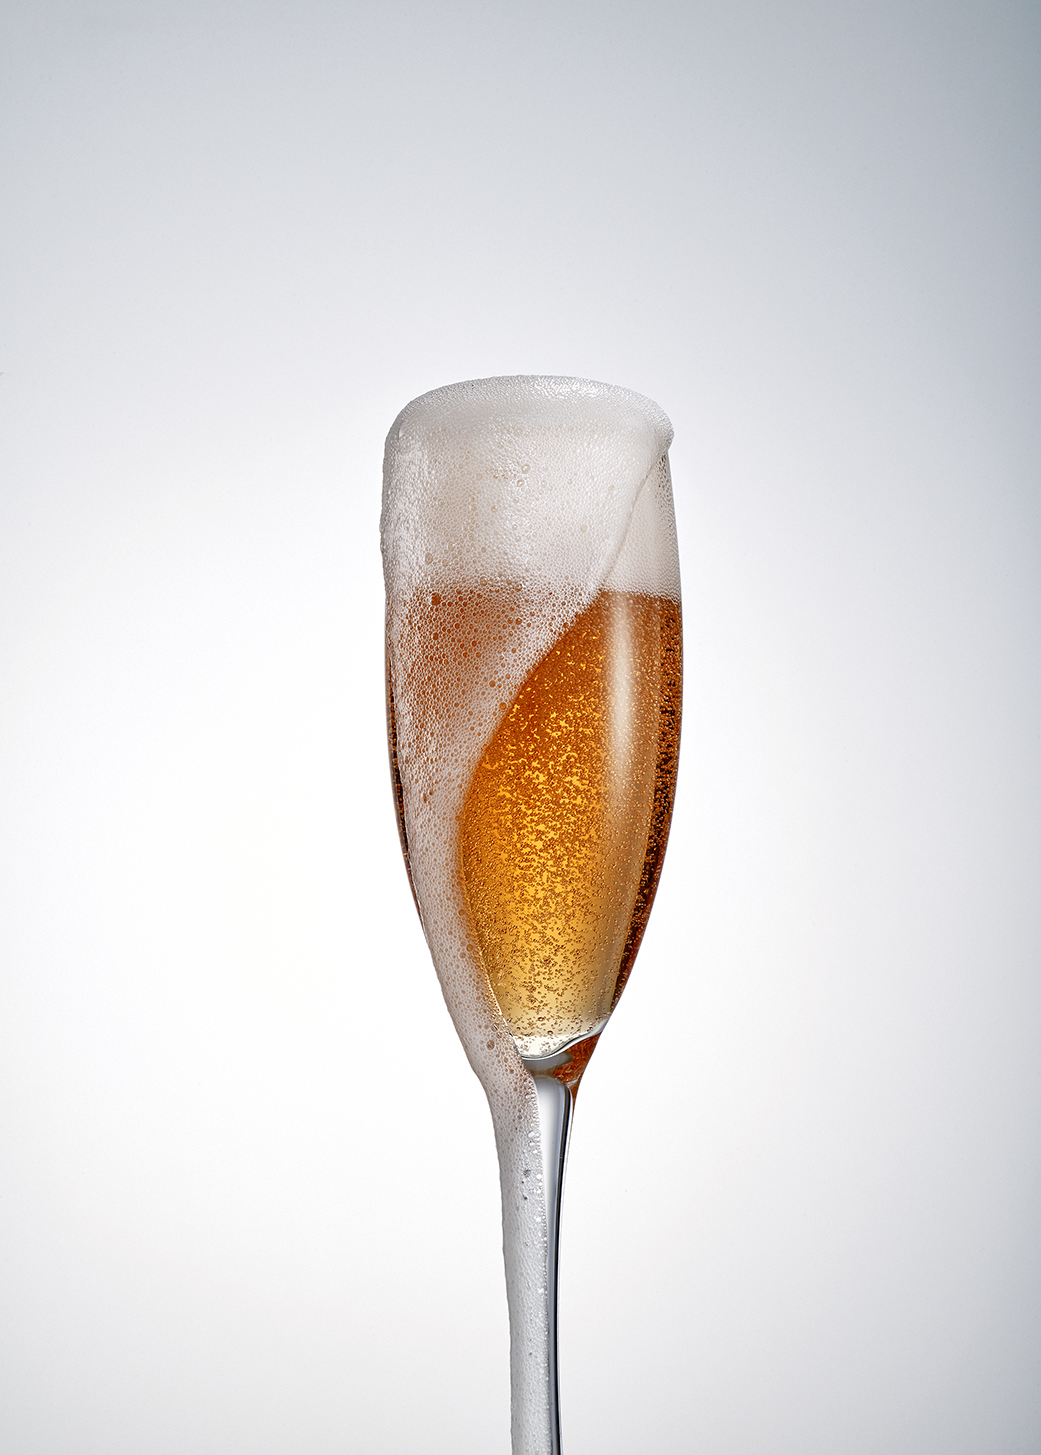 The Piper-Heidsieck Rare Rosé Vintage 2007 is a blend of Chardonnay and Pinot Noir grapes.